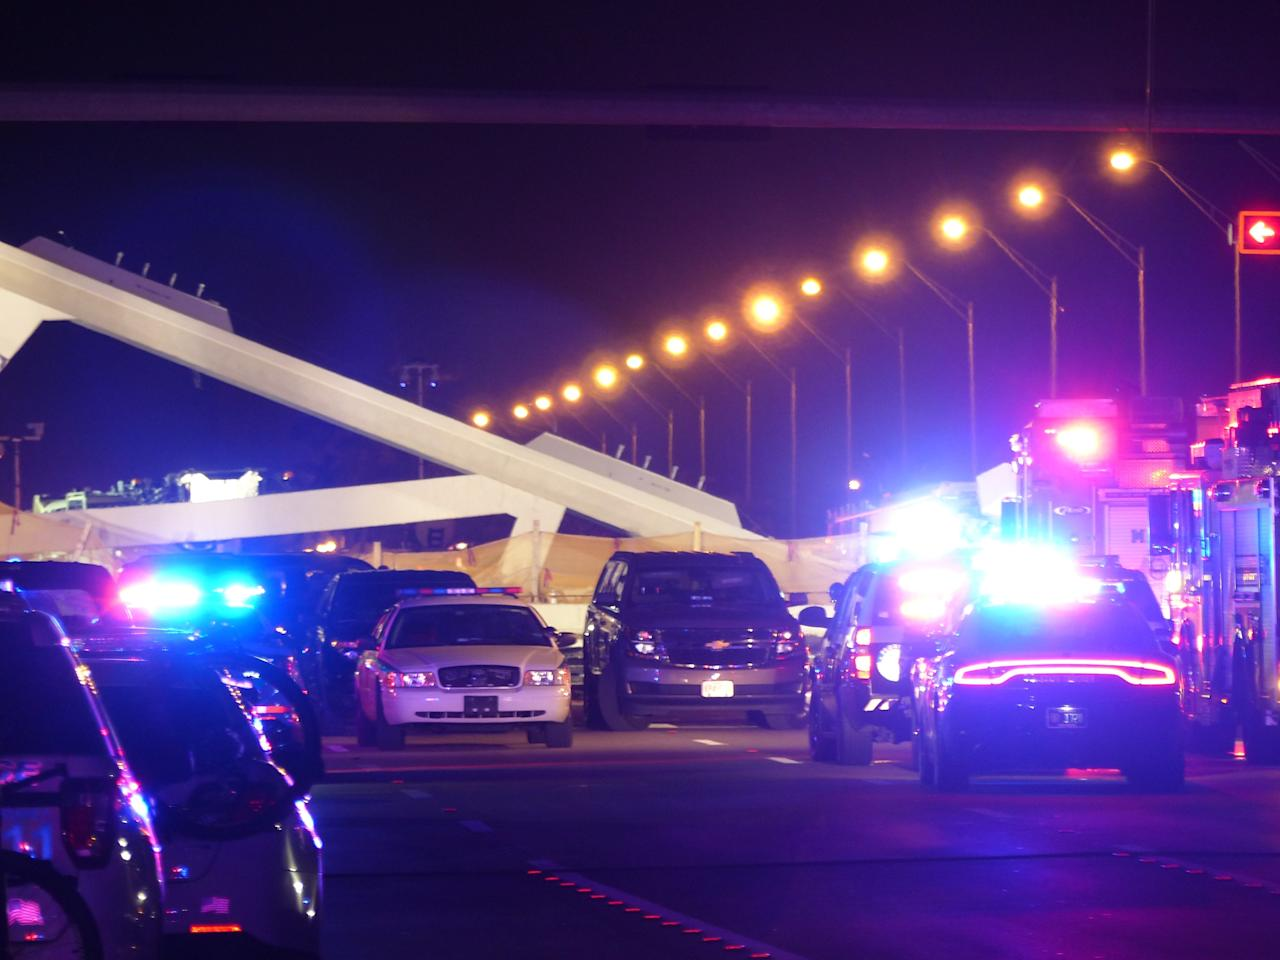 <p>Police lights illuminate the scene of a pedestrian bridge collapse in Miami, Florida on March 15, 2018, crushing a number of cars below and reportedly leaving several people dead. (Photo: Gaston De Cardenas/AFP/Getty Images) </p>